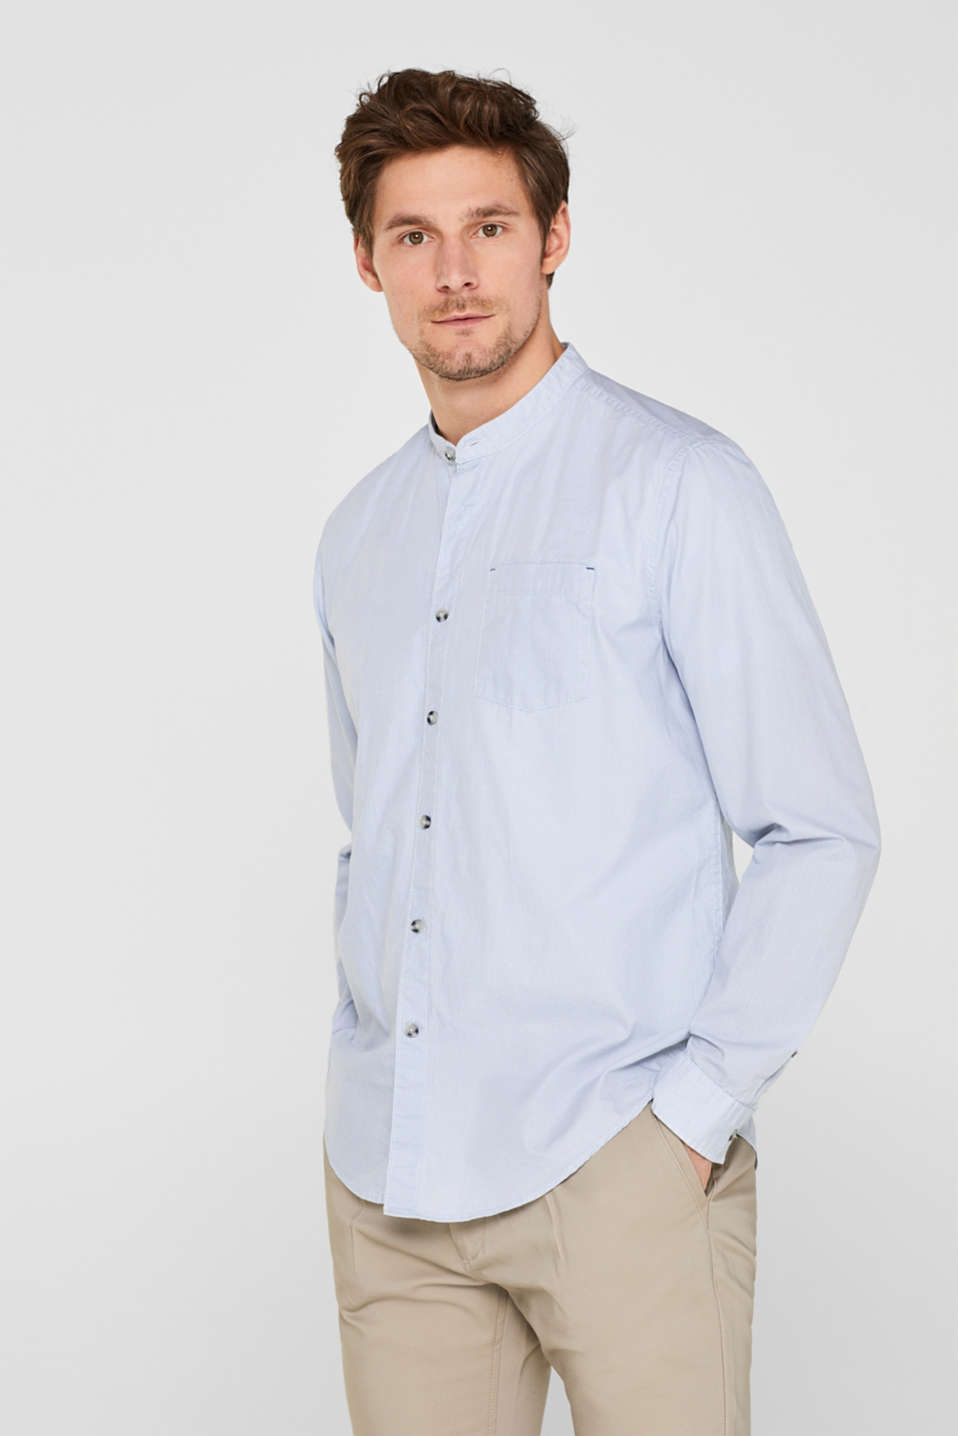 Print shirt with a stand-up collar, 100% cotton